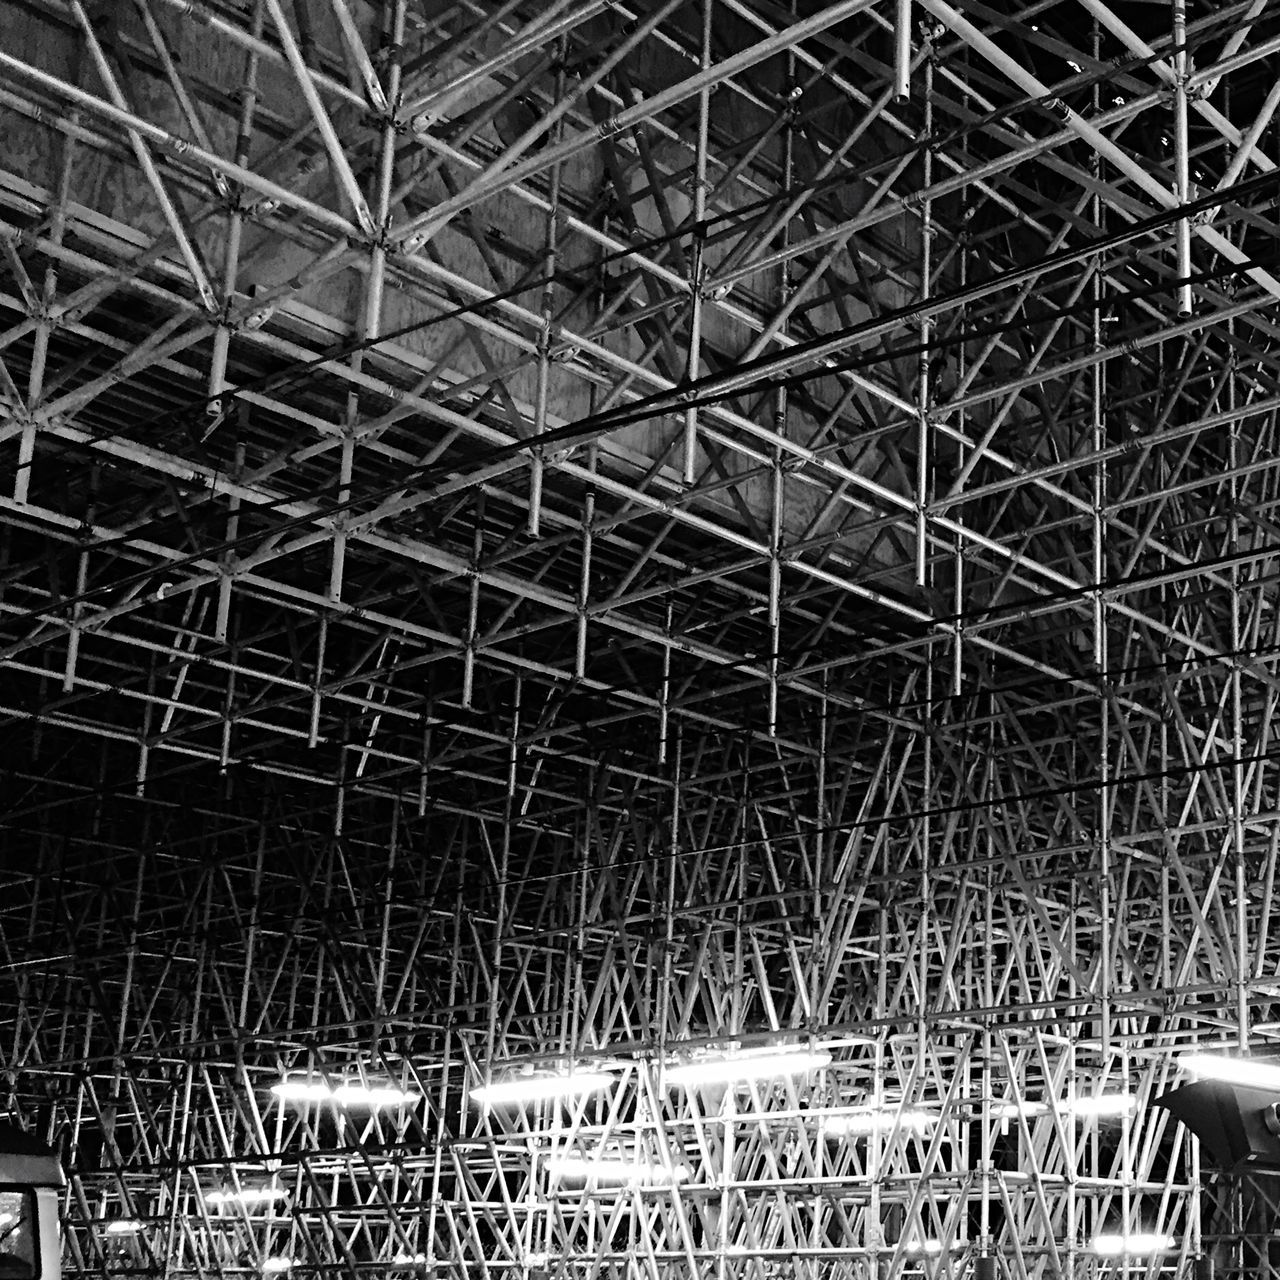 Scaffolding Structure For Support Of Building